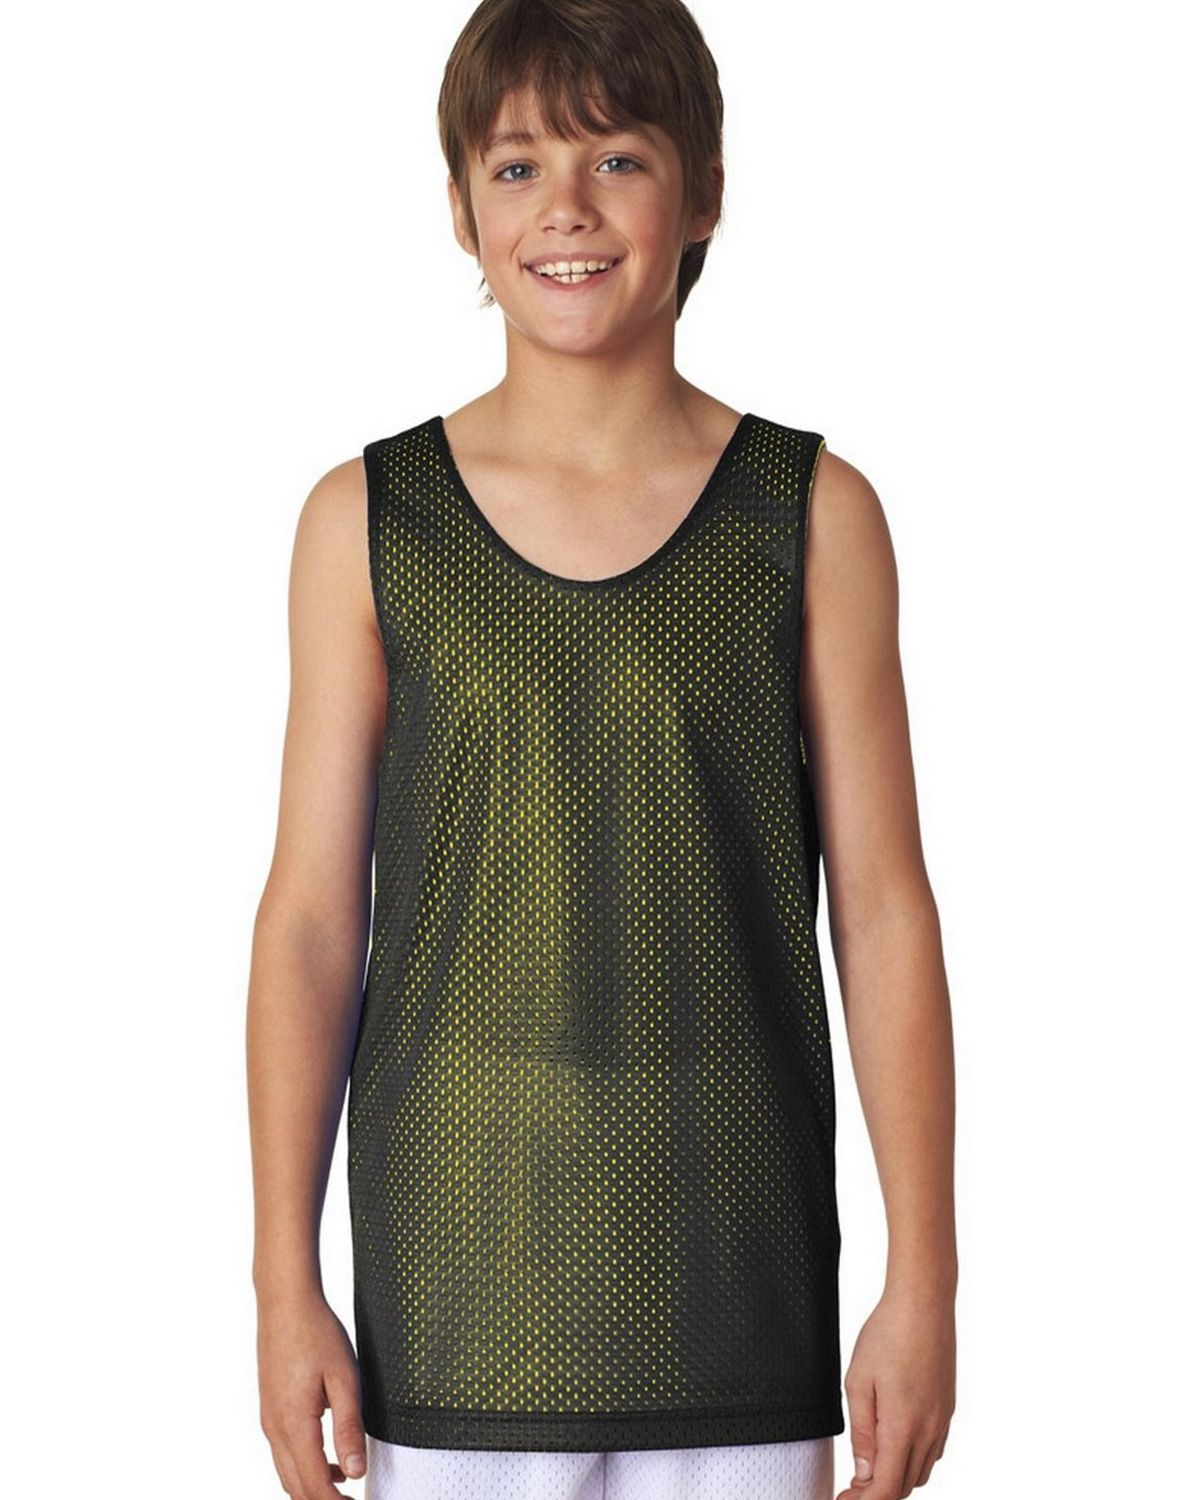 Image of A4 N2206 Youth Reversible Mesh Tank - Black/Gold - S